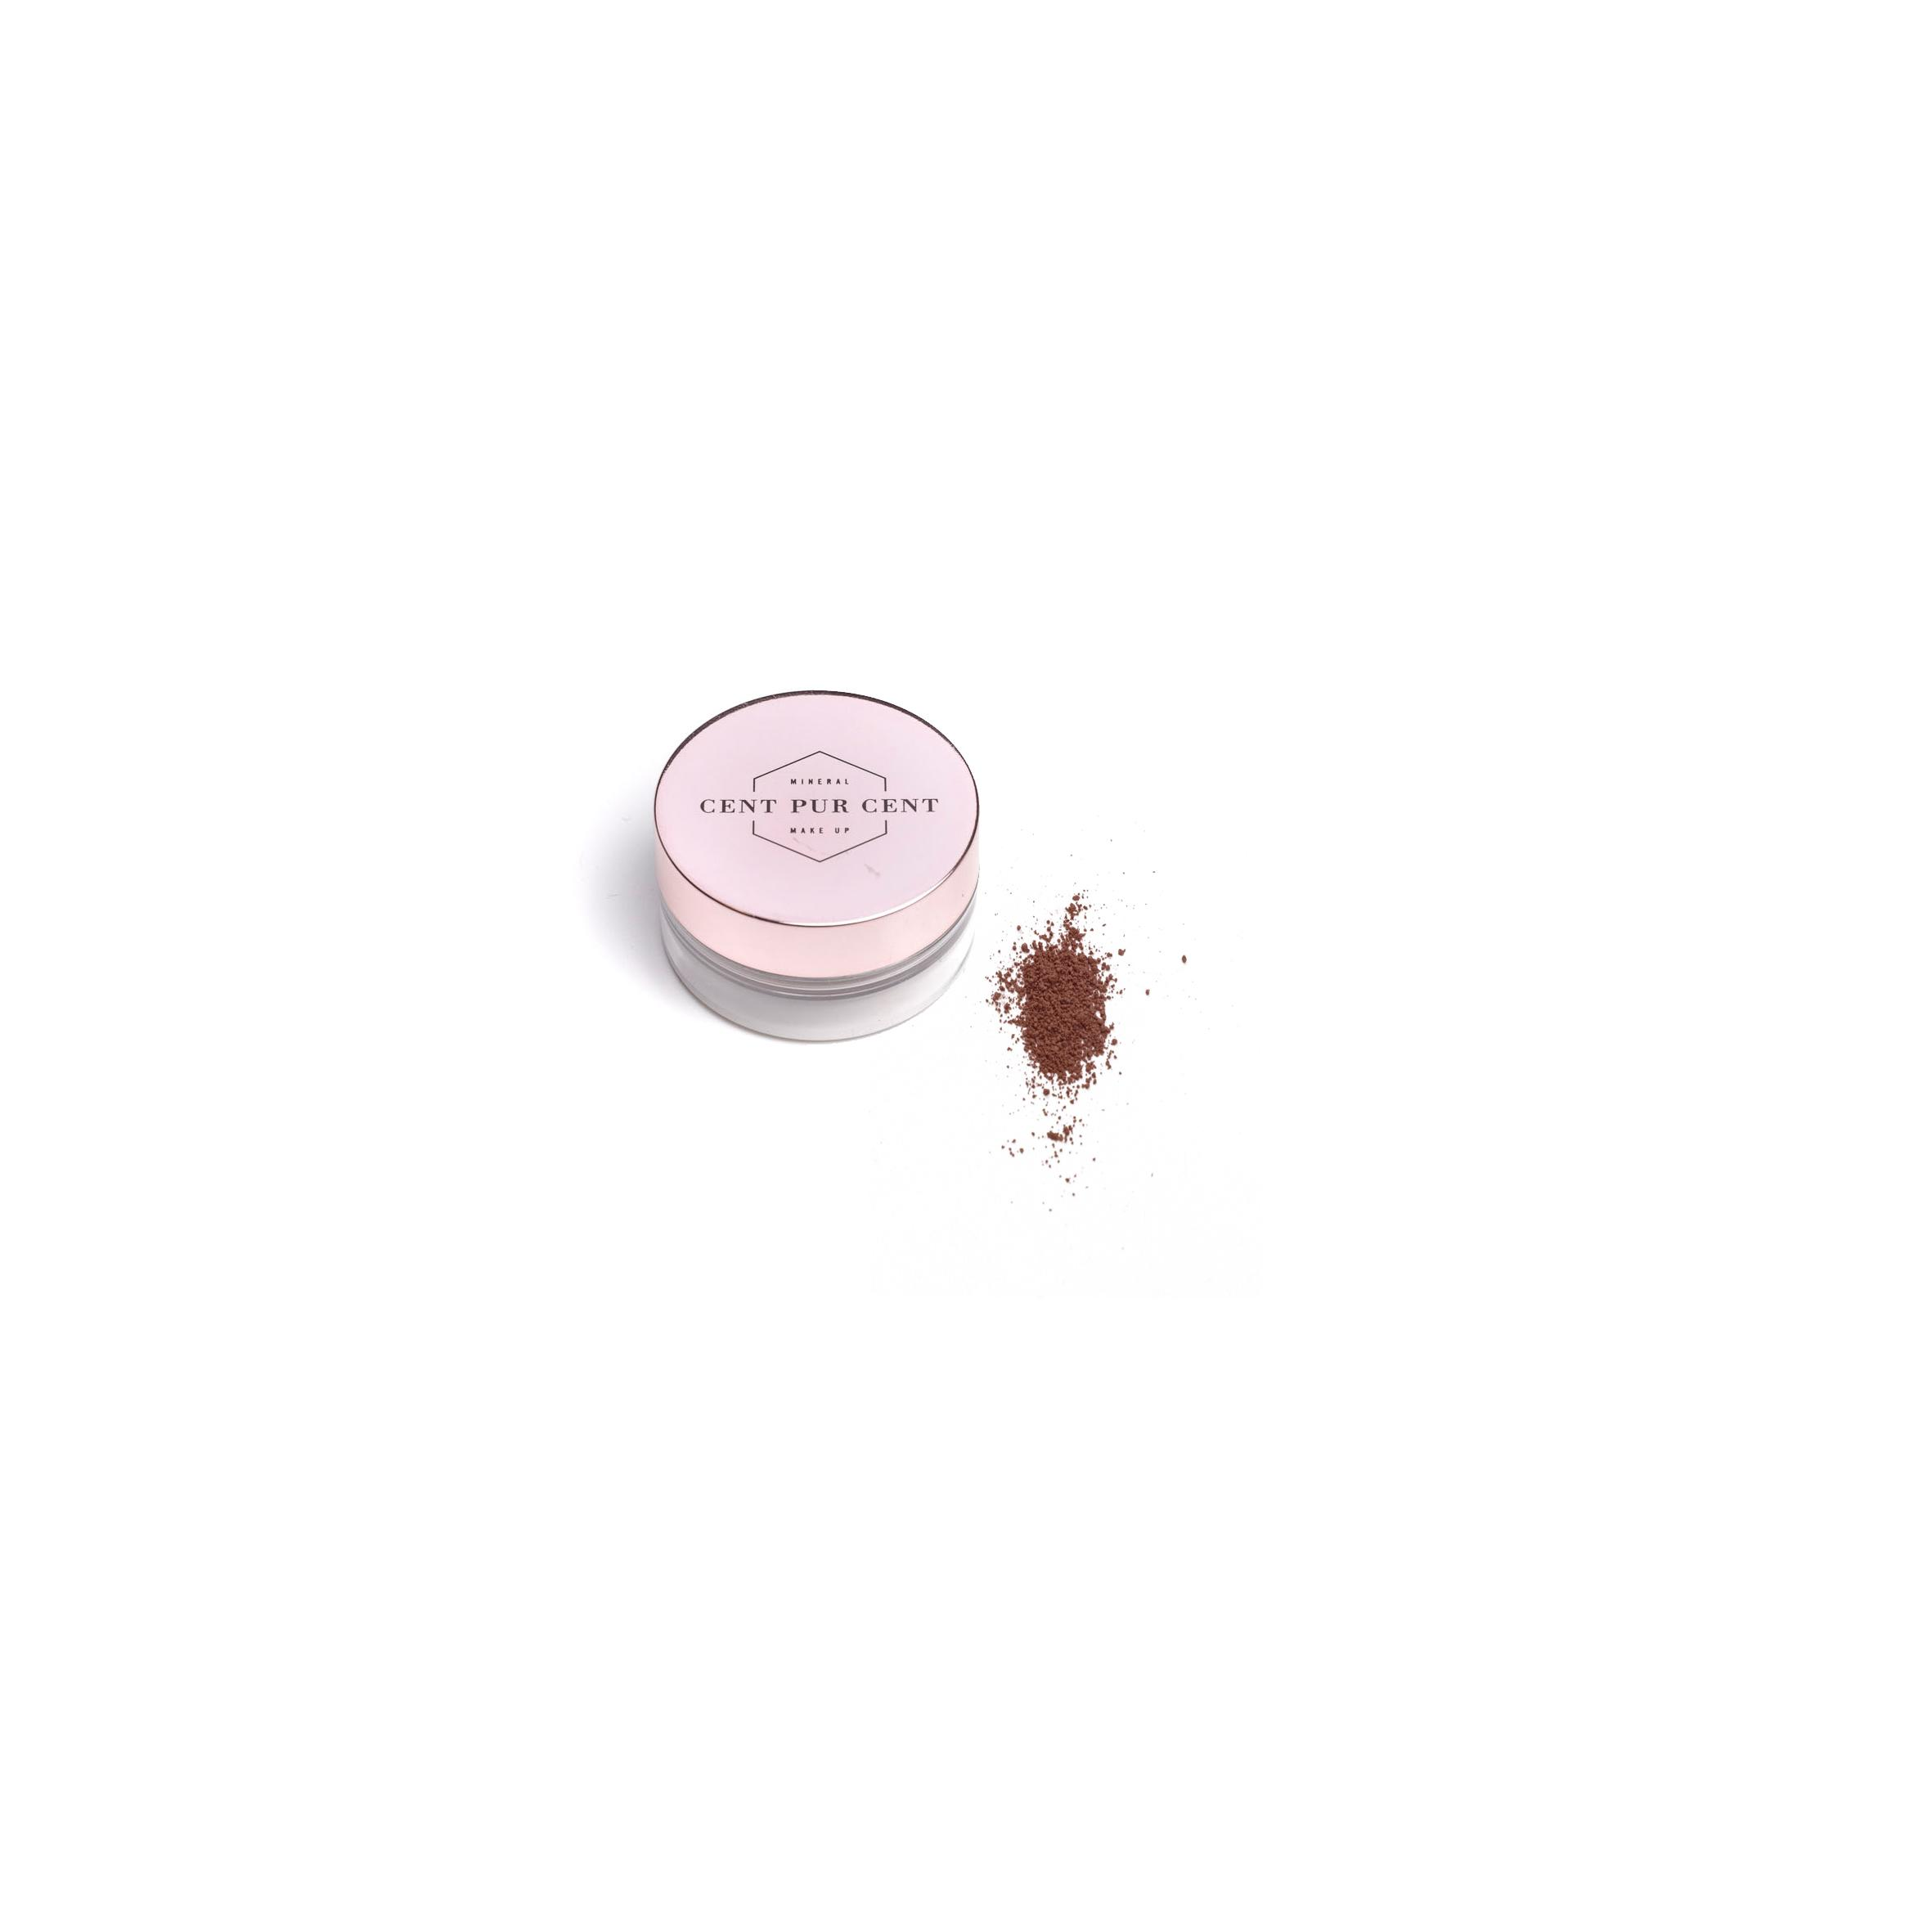 Cent Pur Cent Loose Mineral Shadow Uvas 2g